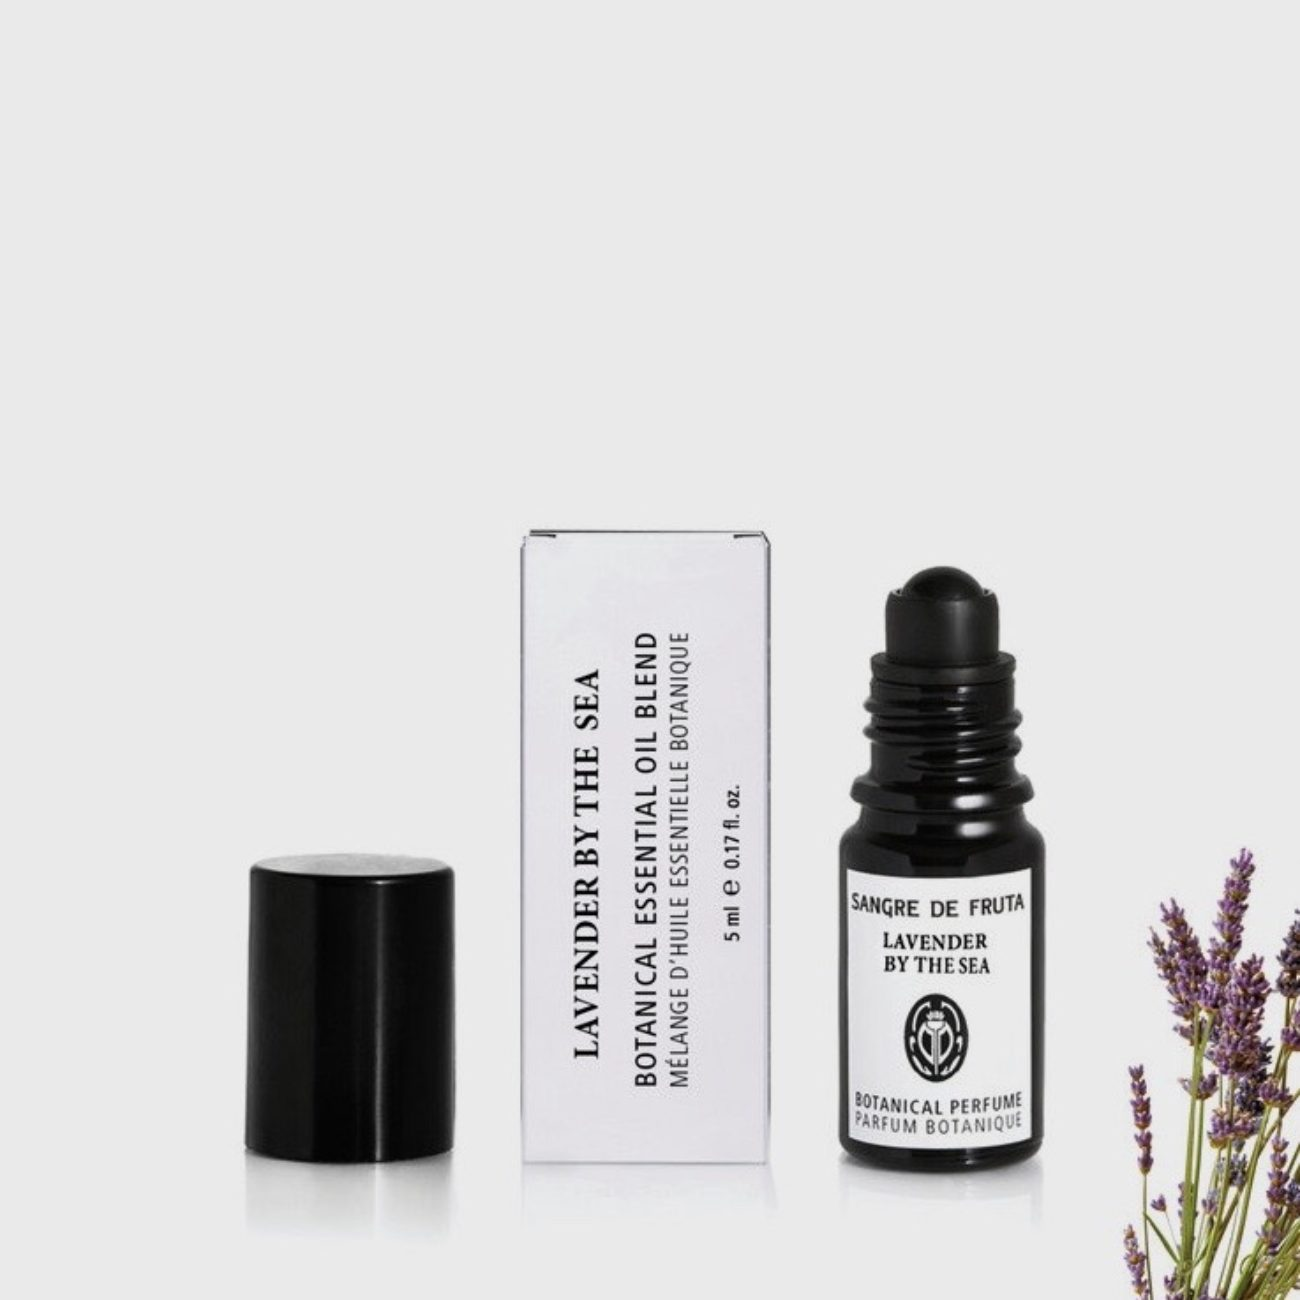 Sangre De Fruta Roll On Essential Oil Perfume, Lavender By The Sea